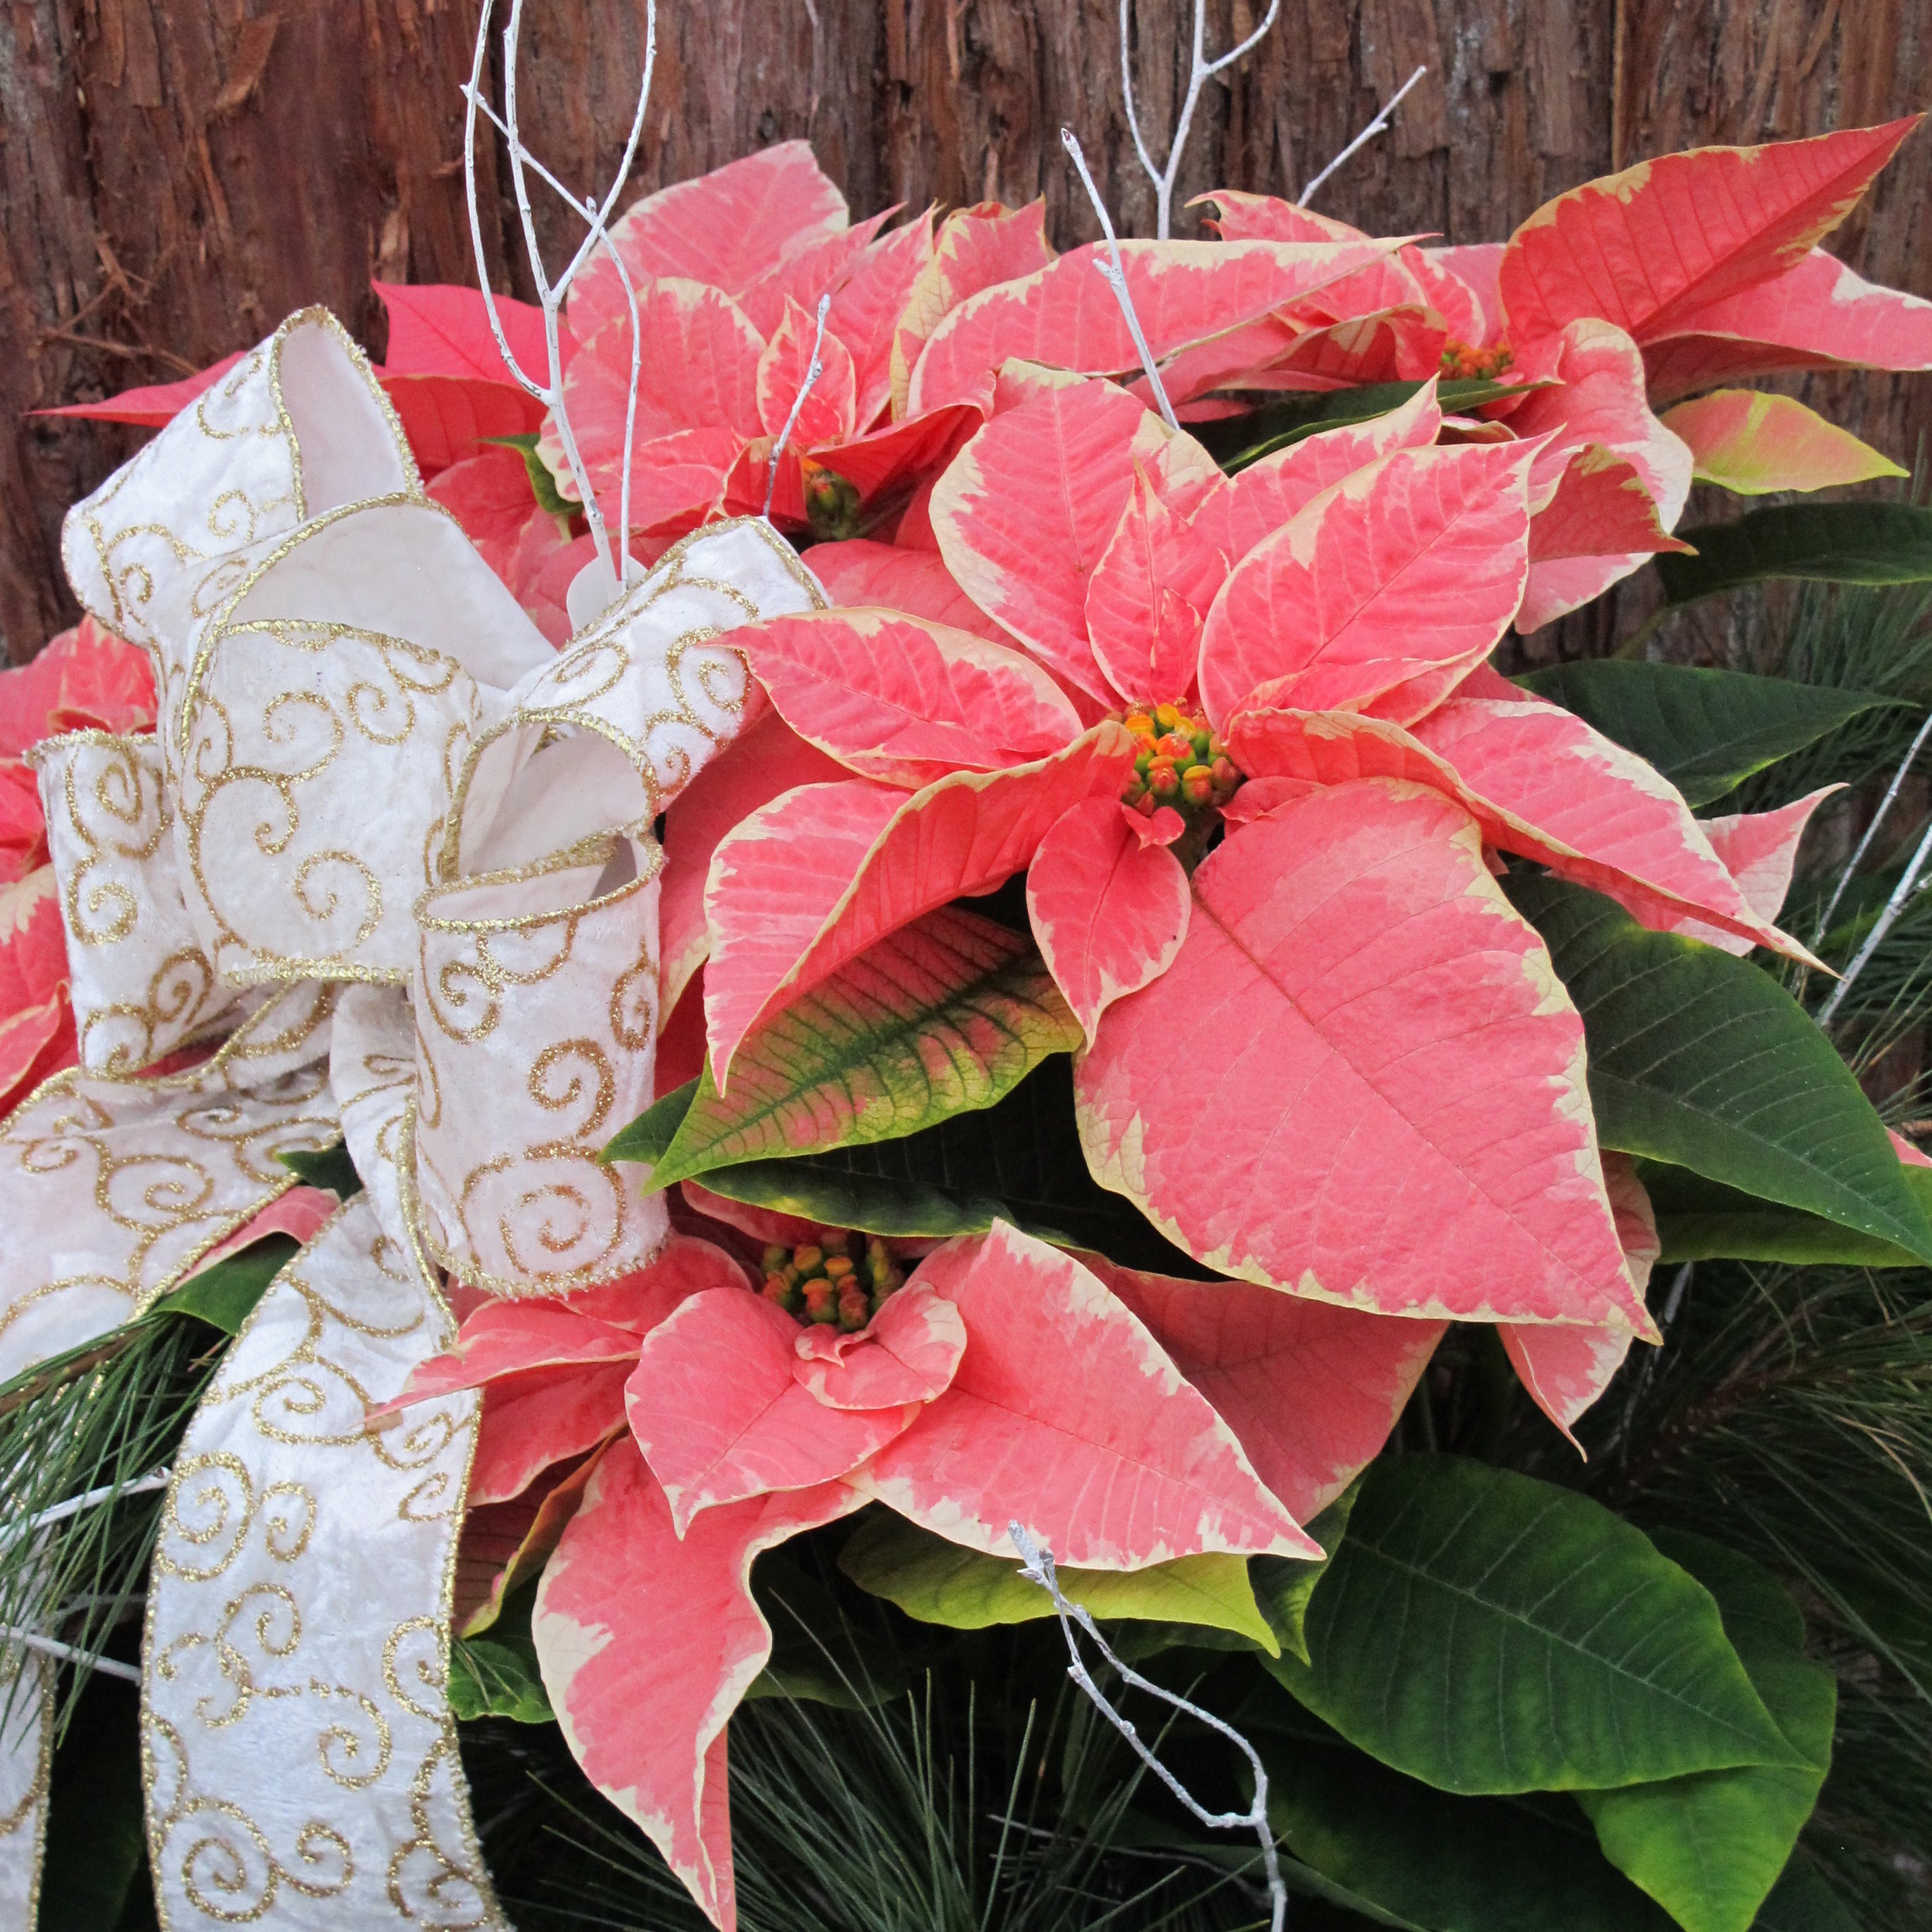 P-Marble poinsettia decorated.JPG